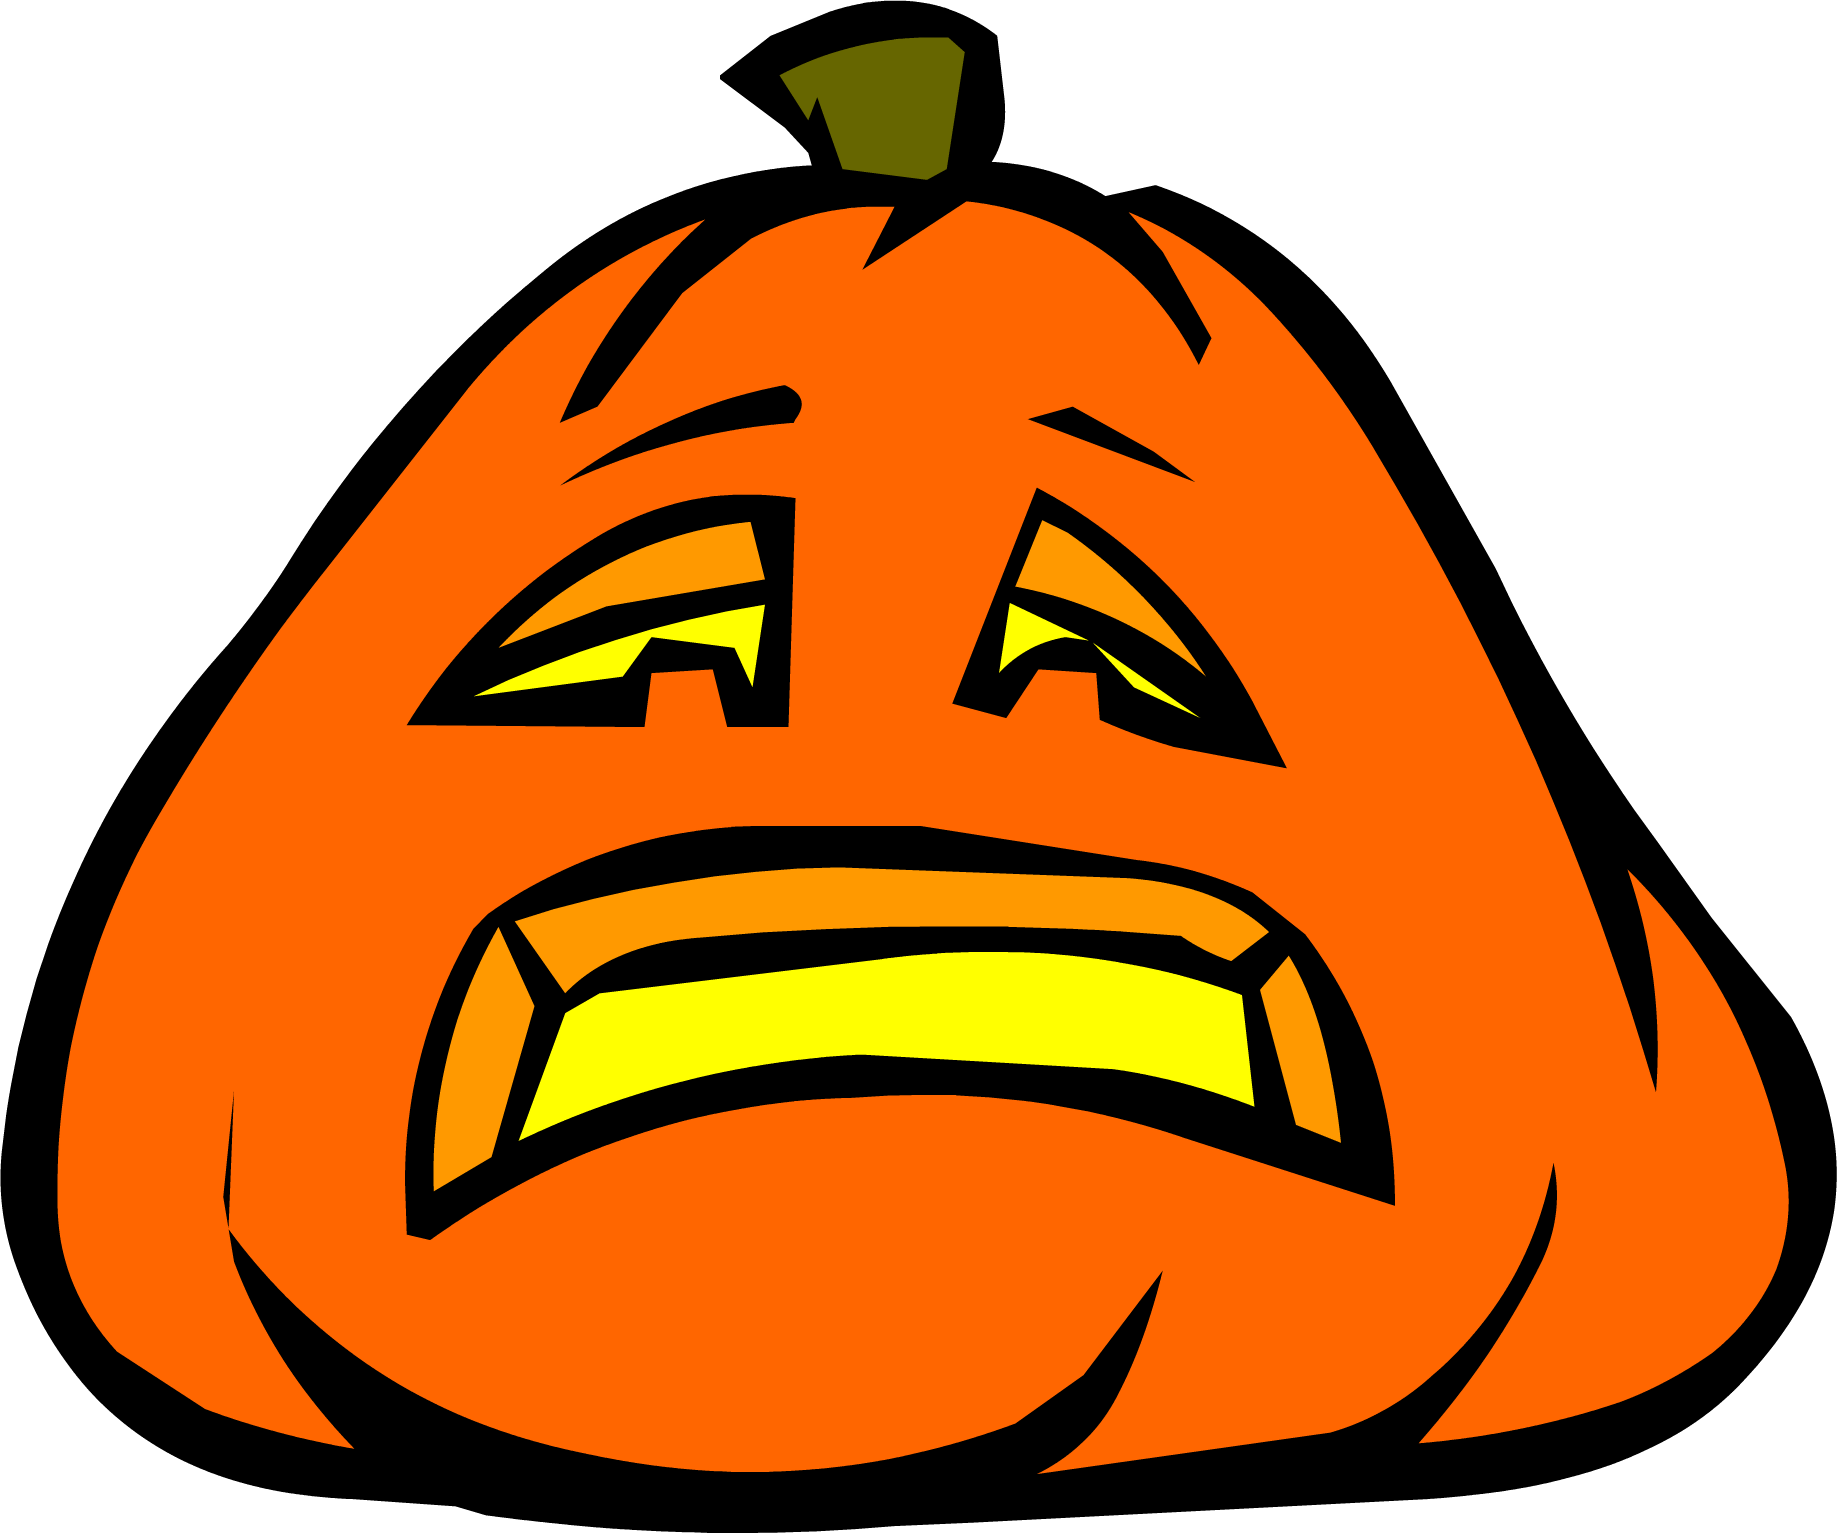 Pumpkin shape clipart royalty free download Sad Jack-O-Lantern | Club Penguin Wiki | FANDOM powered by Wikia royalty free download